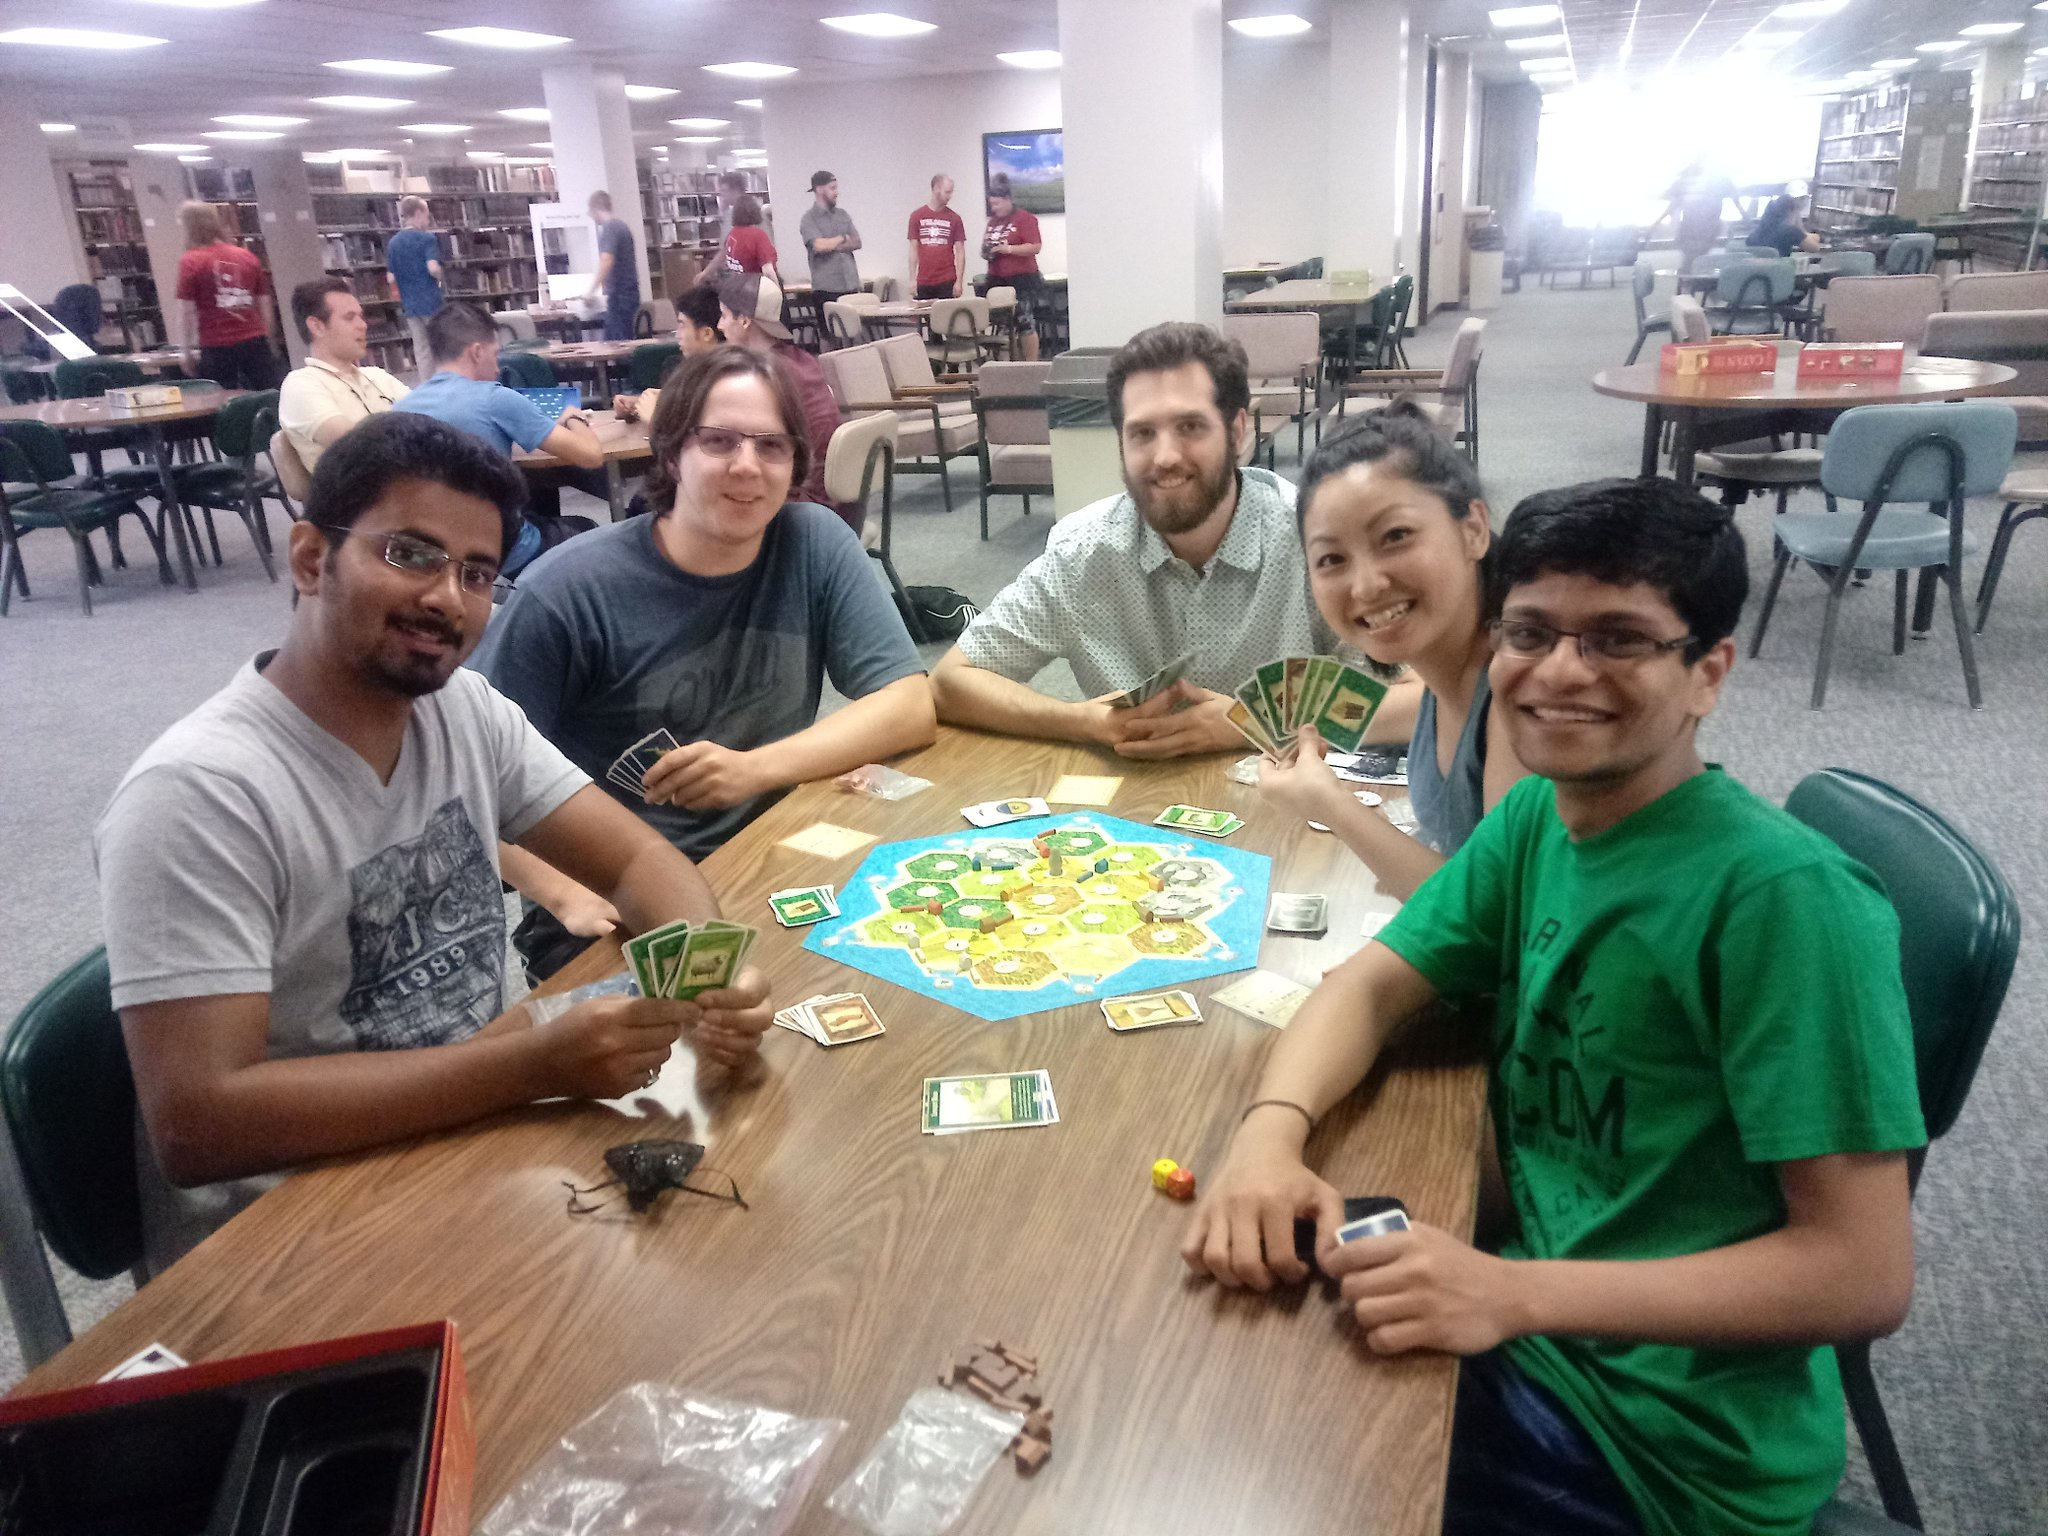 Settlers of Catan is happening! #MeriamGameNight #ChicoWW https://t.co/jfVagLYulC